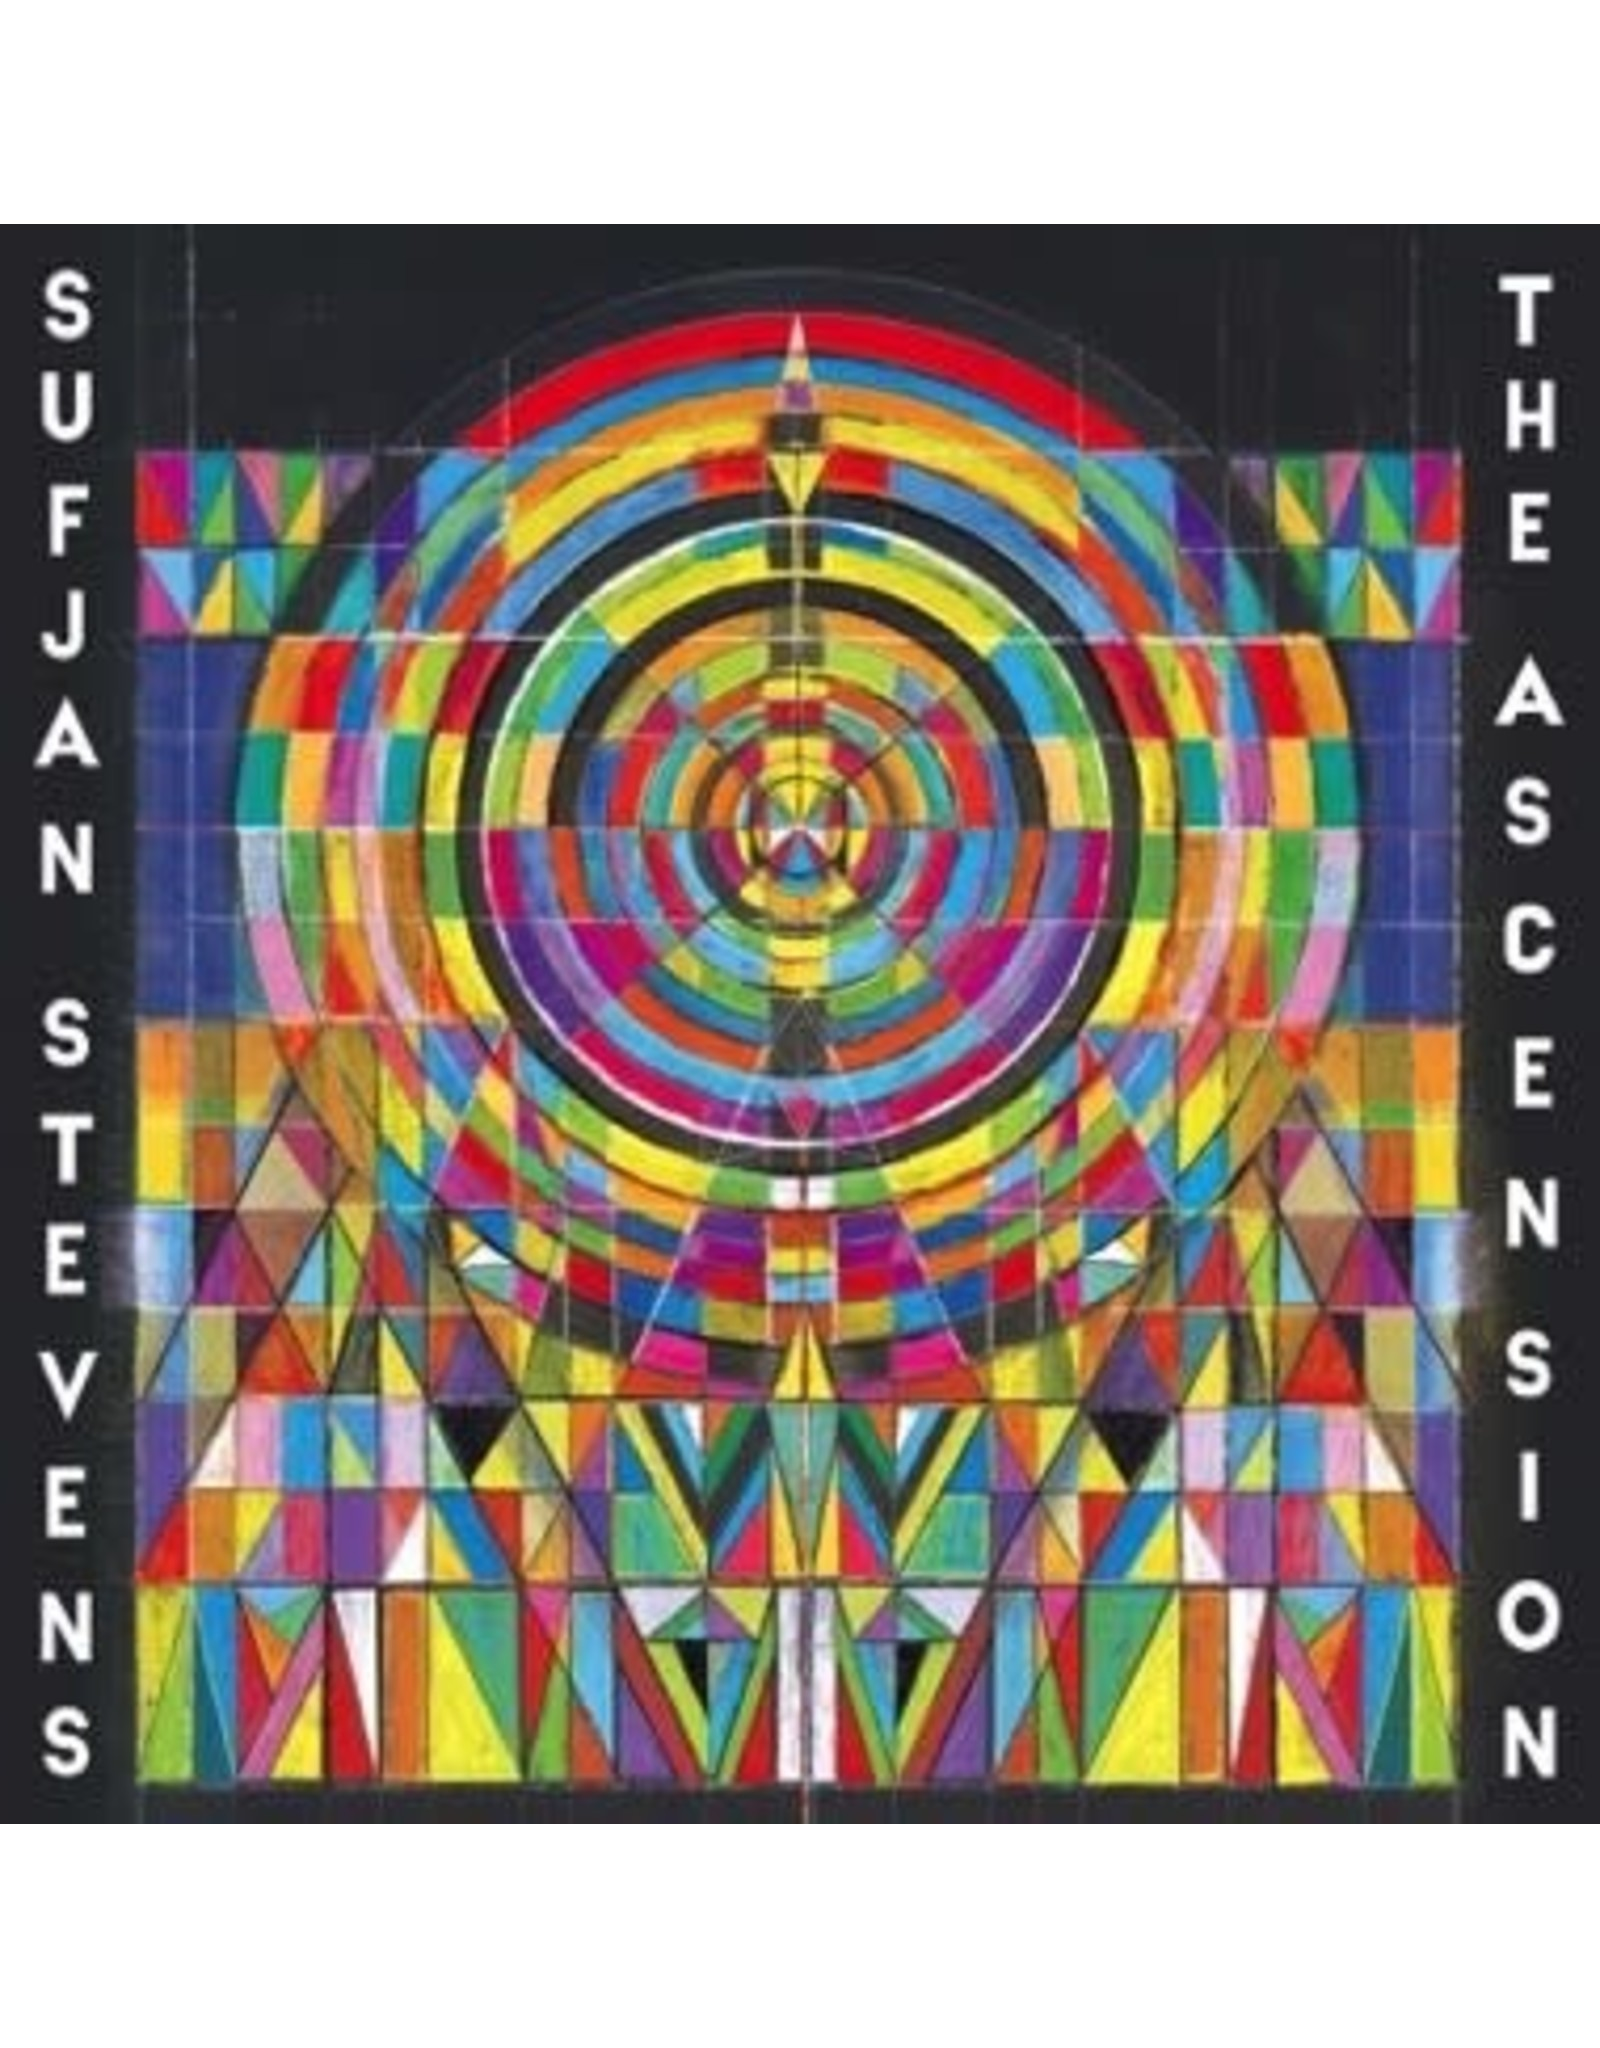 New Vinyl Sufjan Stevens - The Ascension 2LP